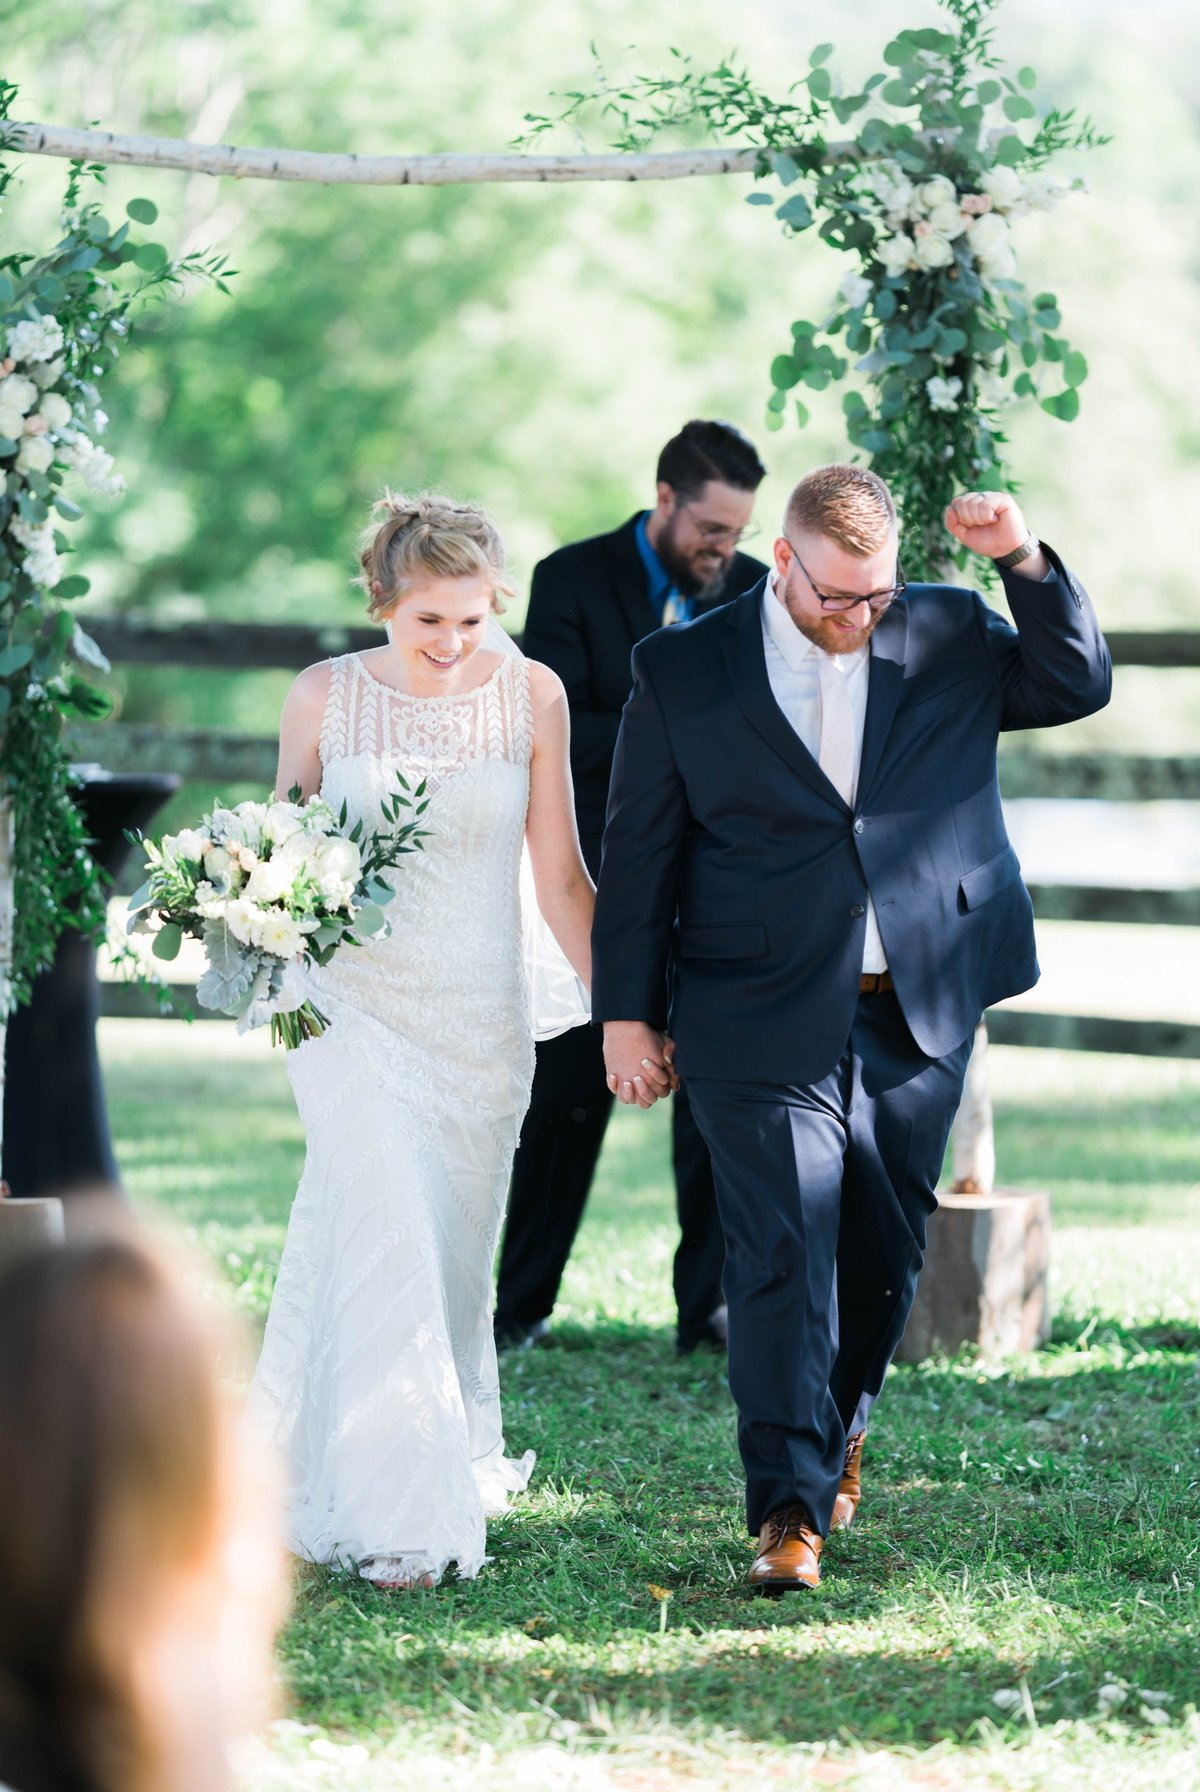 SorellaFarms_VirginiaWeddingPhotographer_BarnWedding_Lynchburgweddingphotographer_DanielleTyler+2(2)